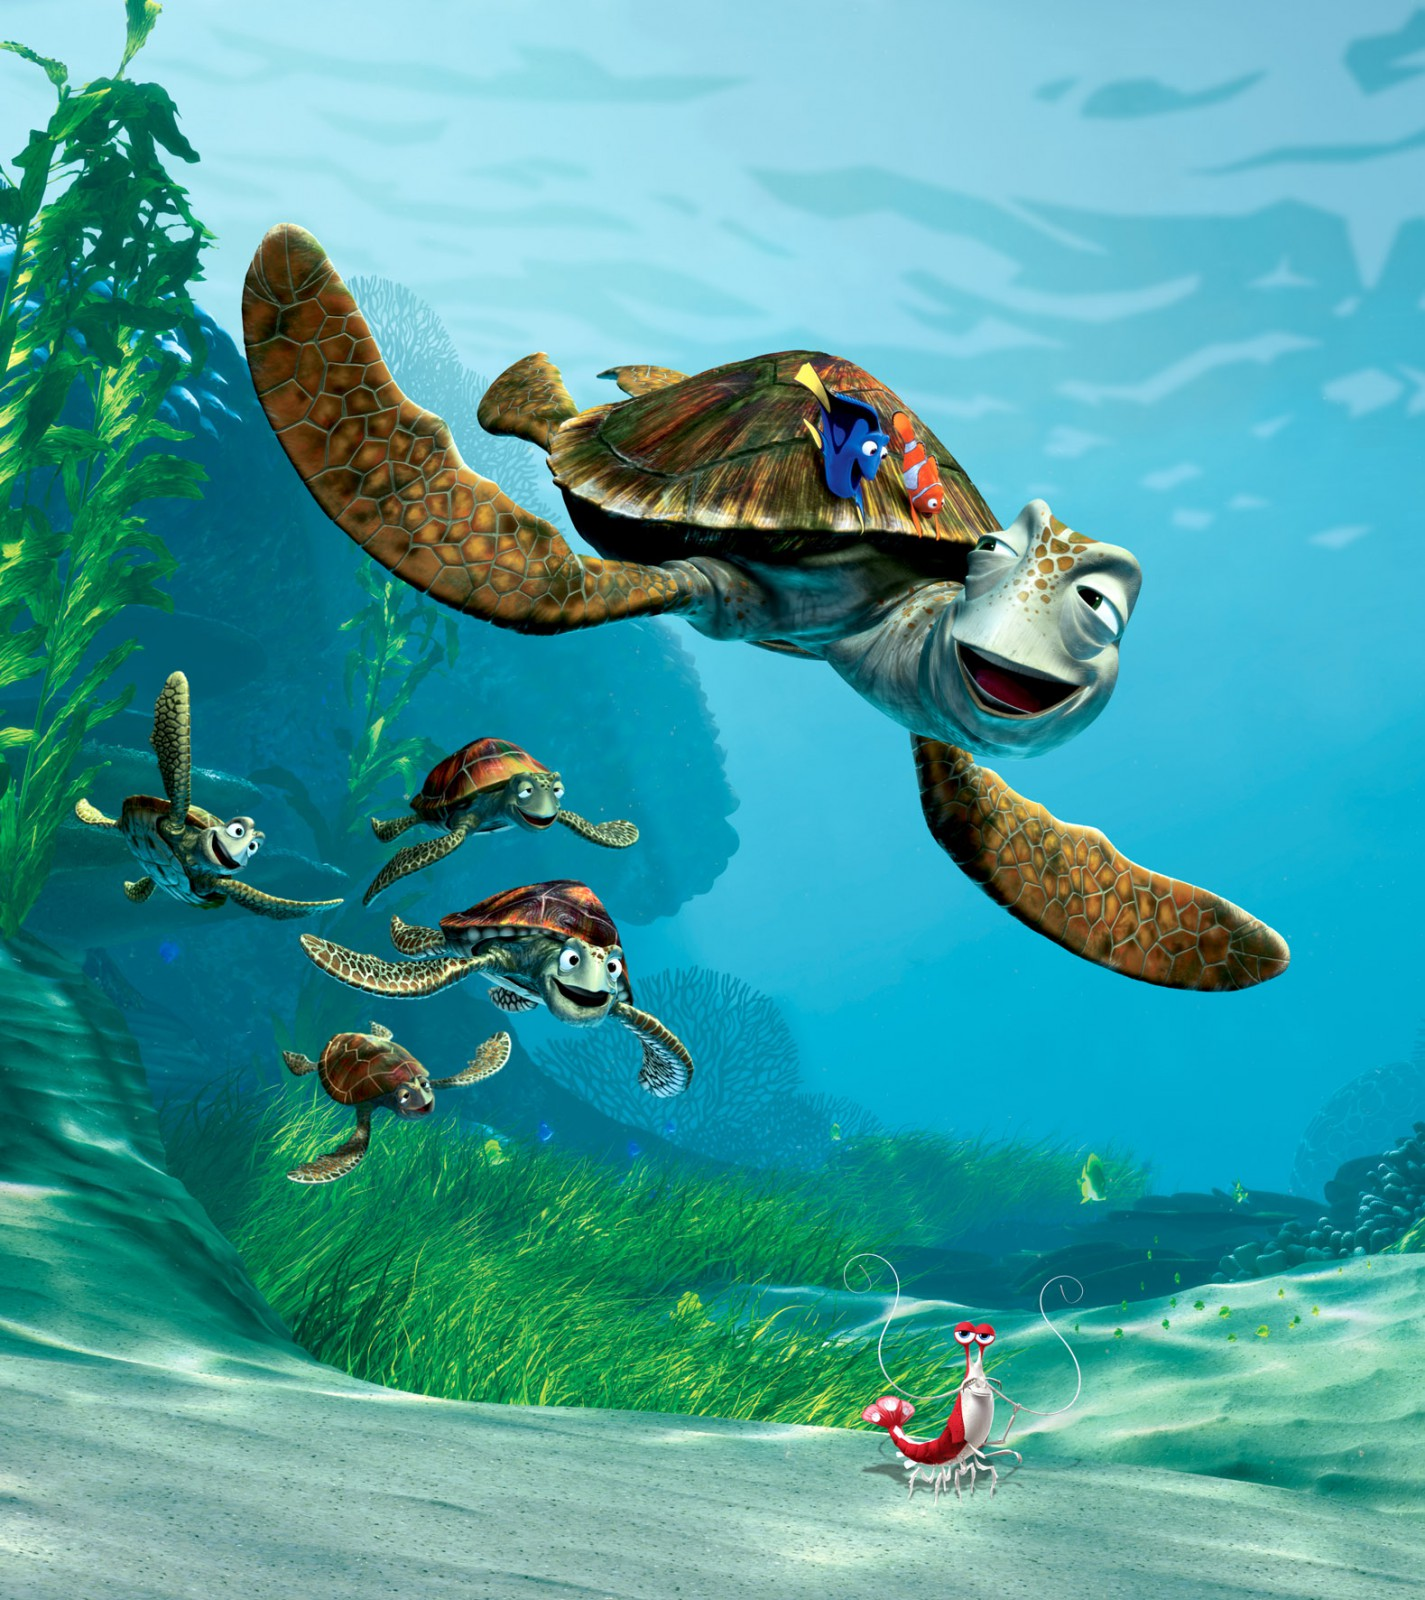 XXL Photo Wallpaper Mural Disney Finding Nemo Crush 001